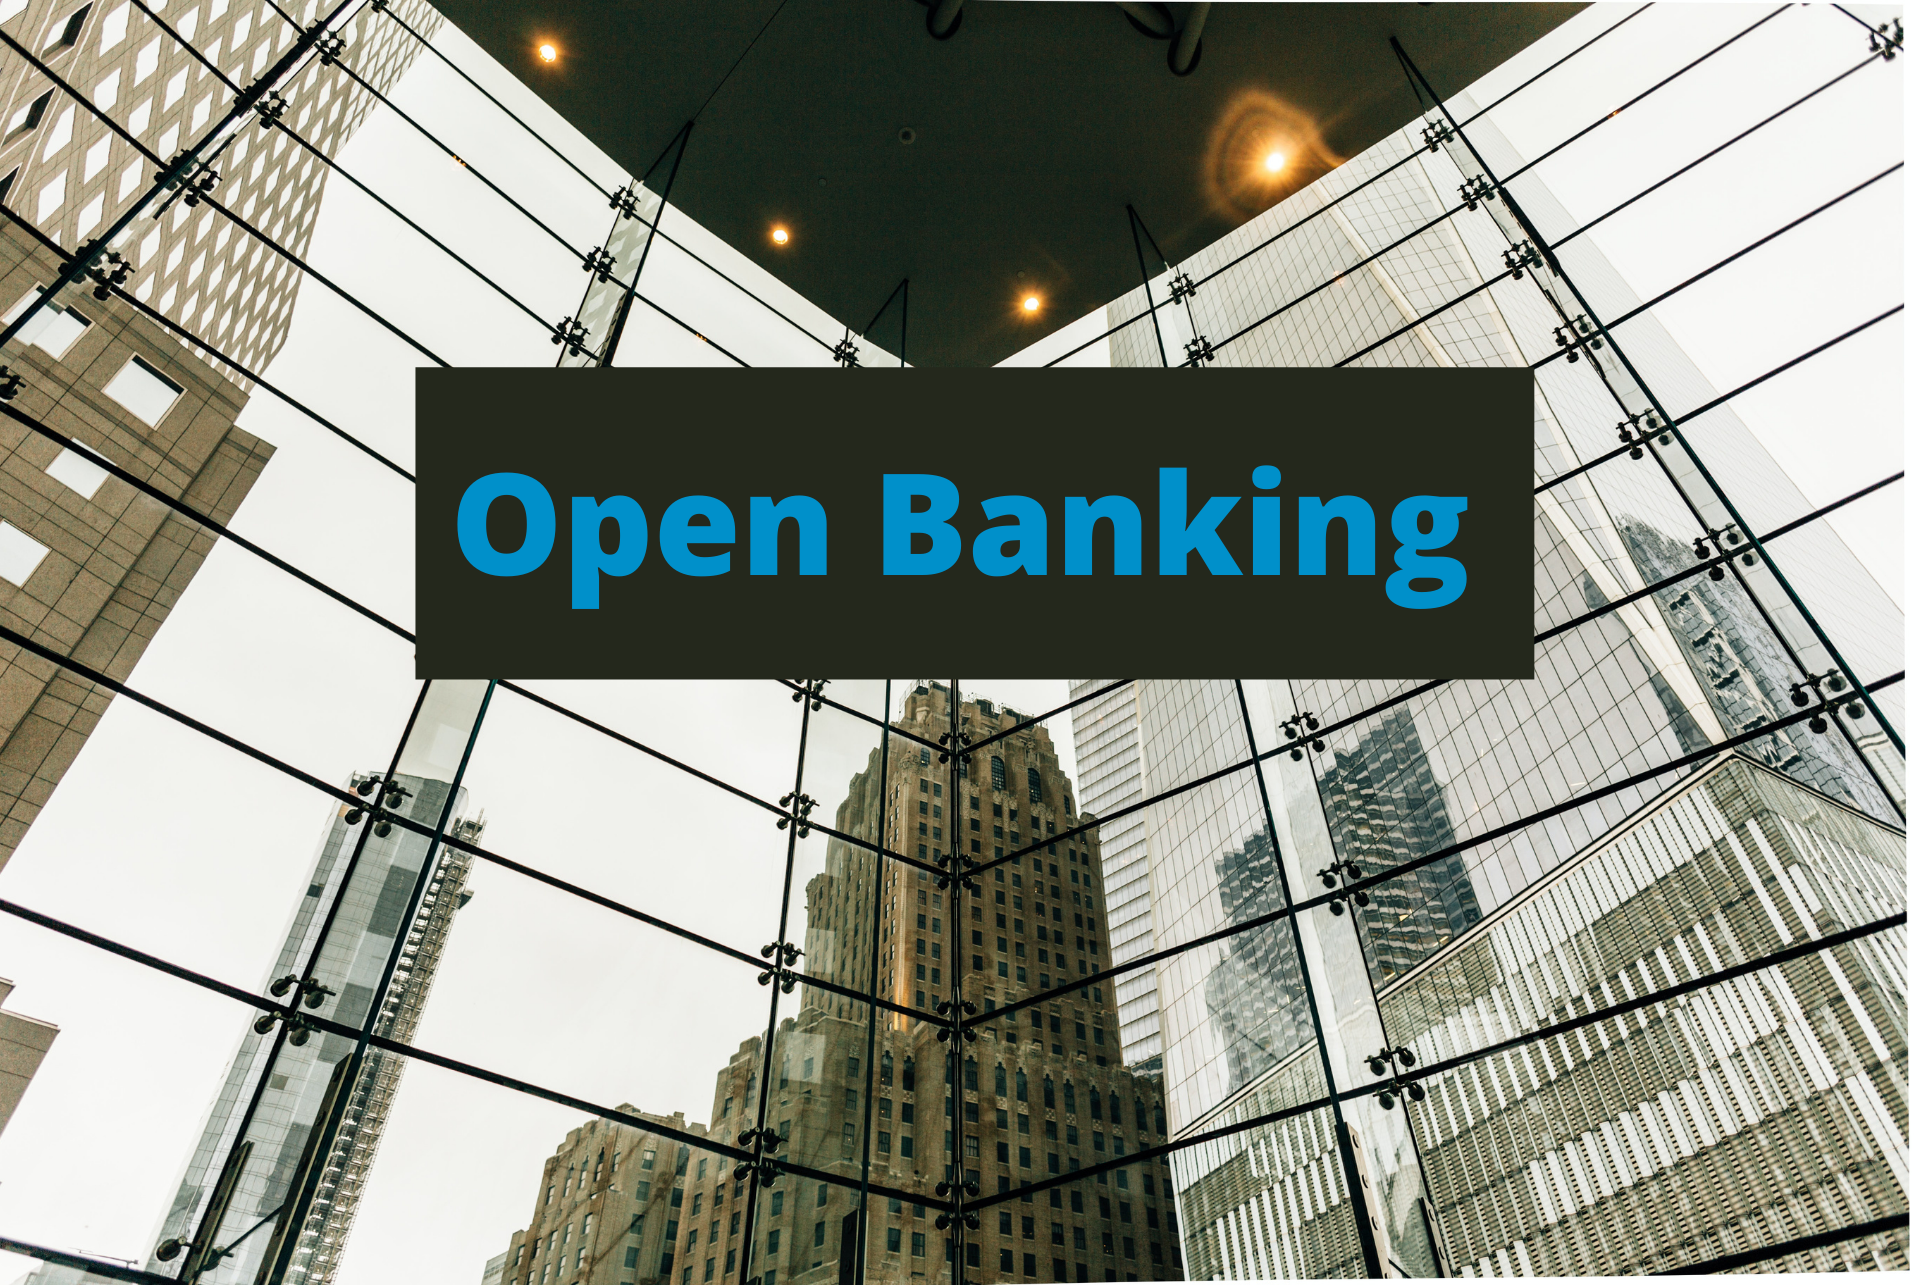 Open banking: Securing the customer financial data supply chain